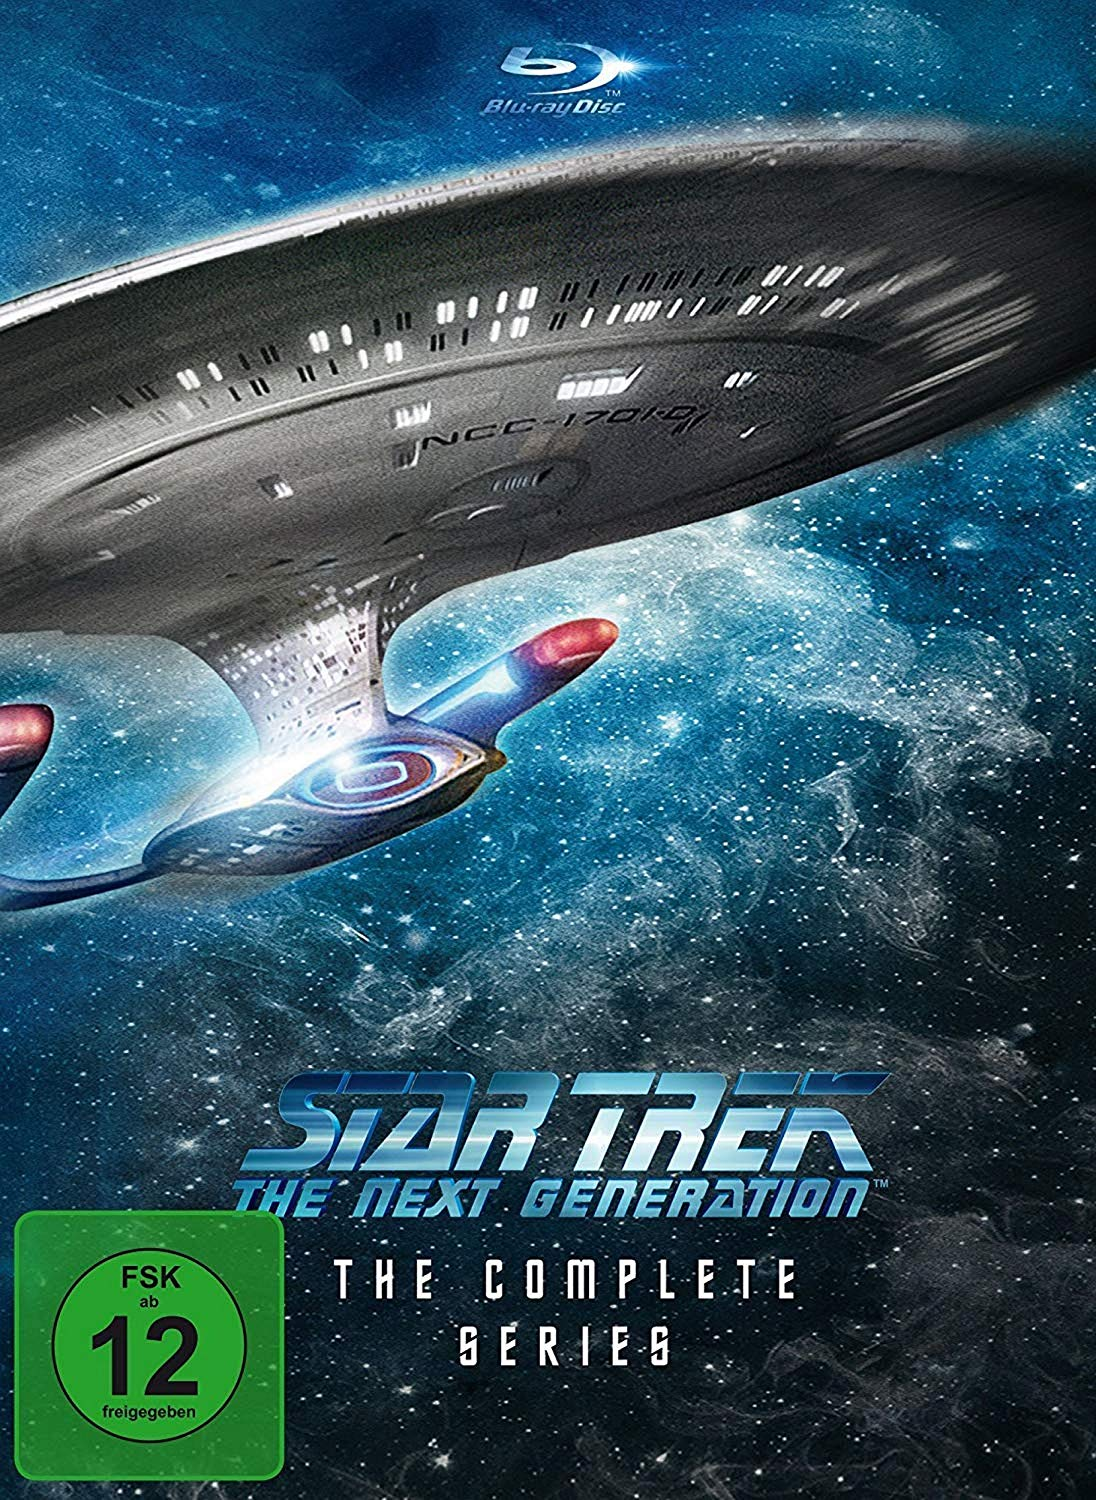 Star Trek - The Next Generation - The Complete Series bei Amazon bestellen